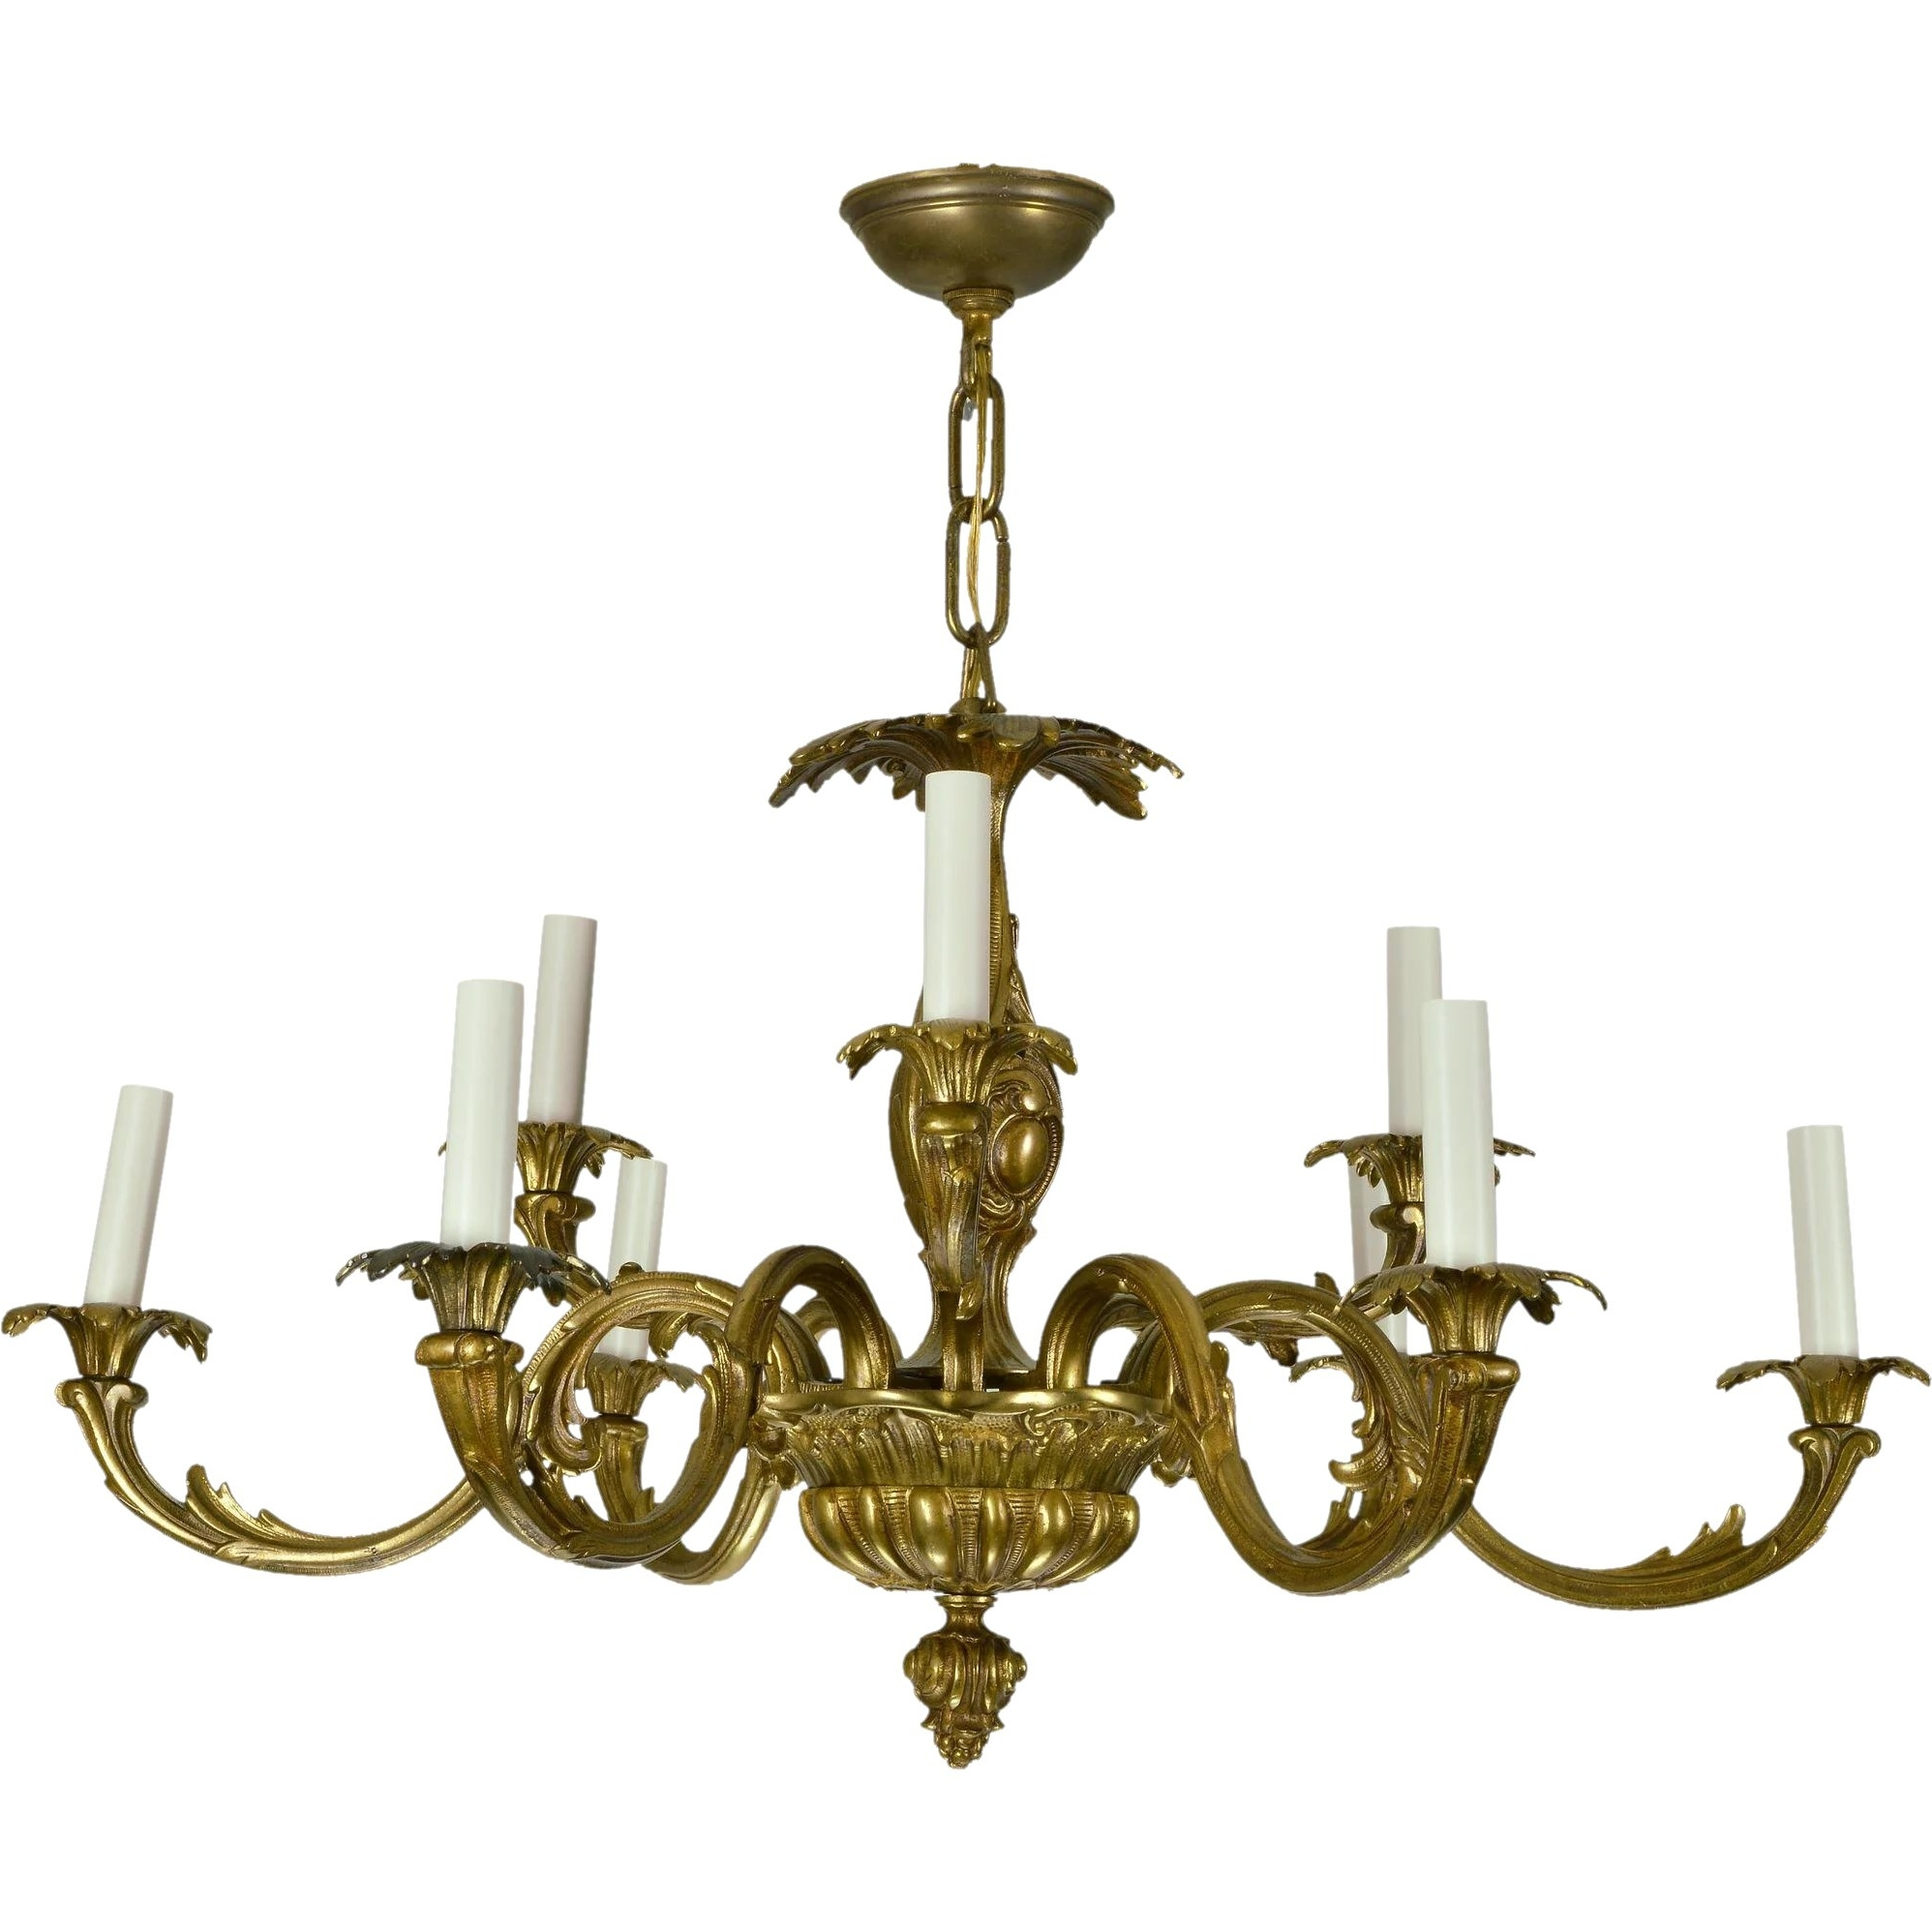 Vintage Brass French Baroque Chandelier : The Old Light Warehouse Inside Most Recent Baroque Chandelier (Gallery 11 of 20)